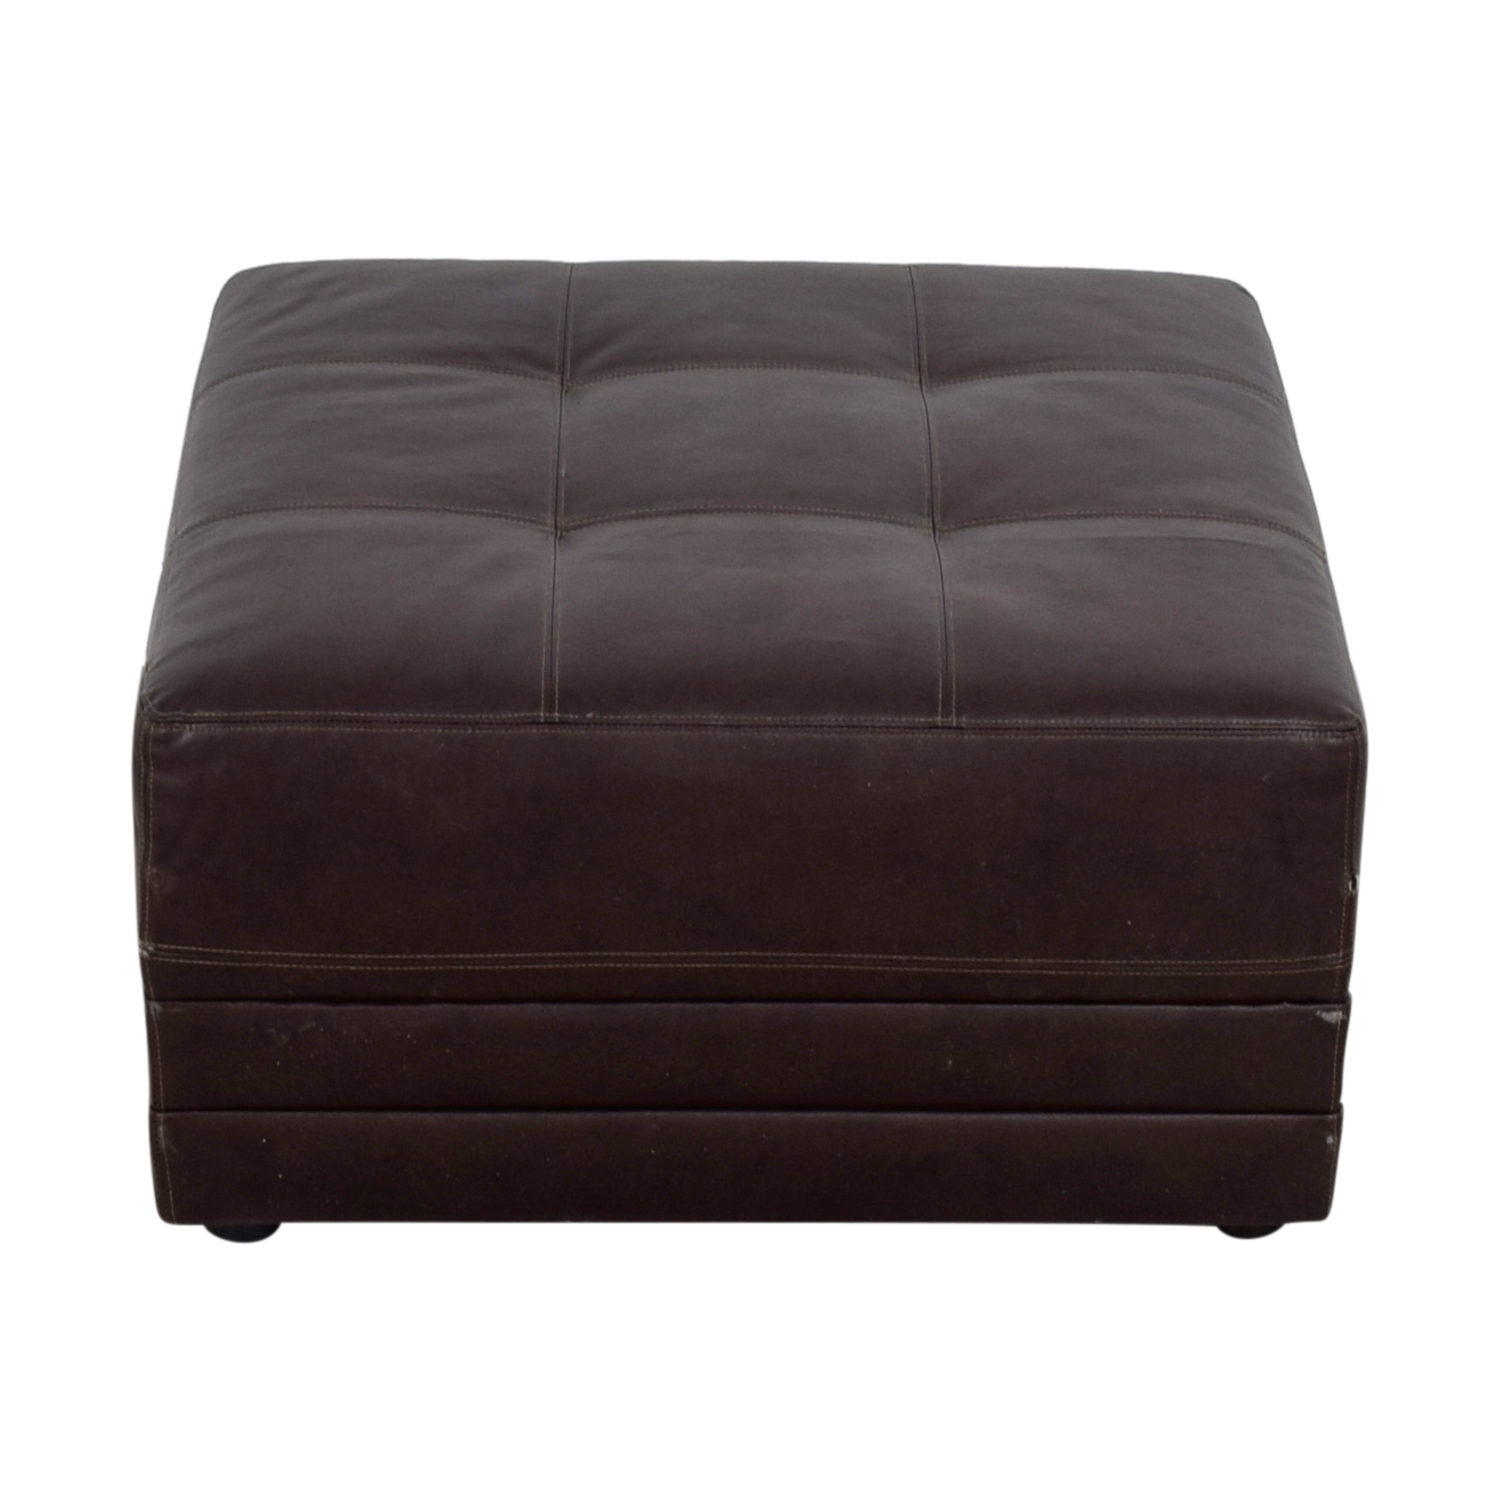 Super 90 Off Albany Industries Albany Industries Inc Faux Leather Brown Square Ottoman Chairs Camellatalisay Diy Chair Ideas Camellatalisaycom